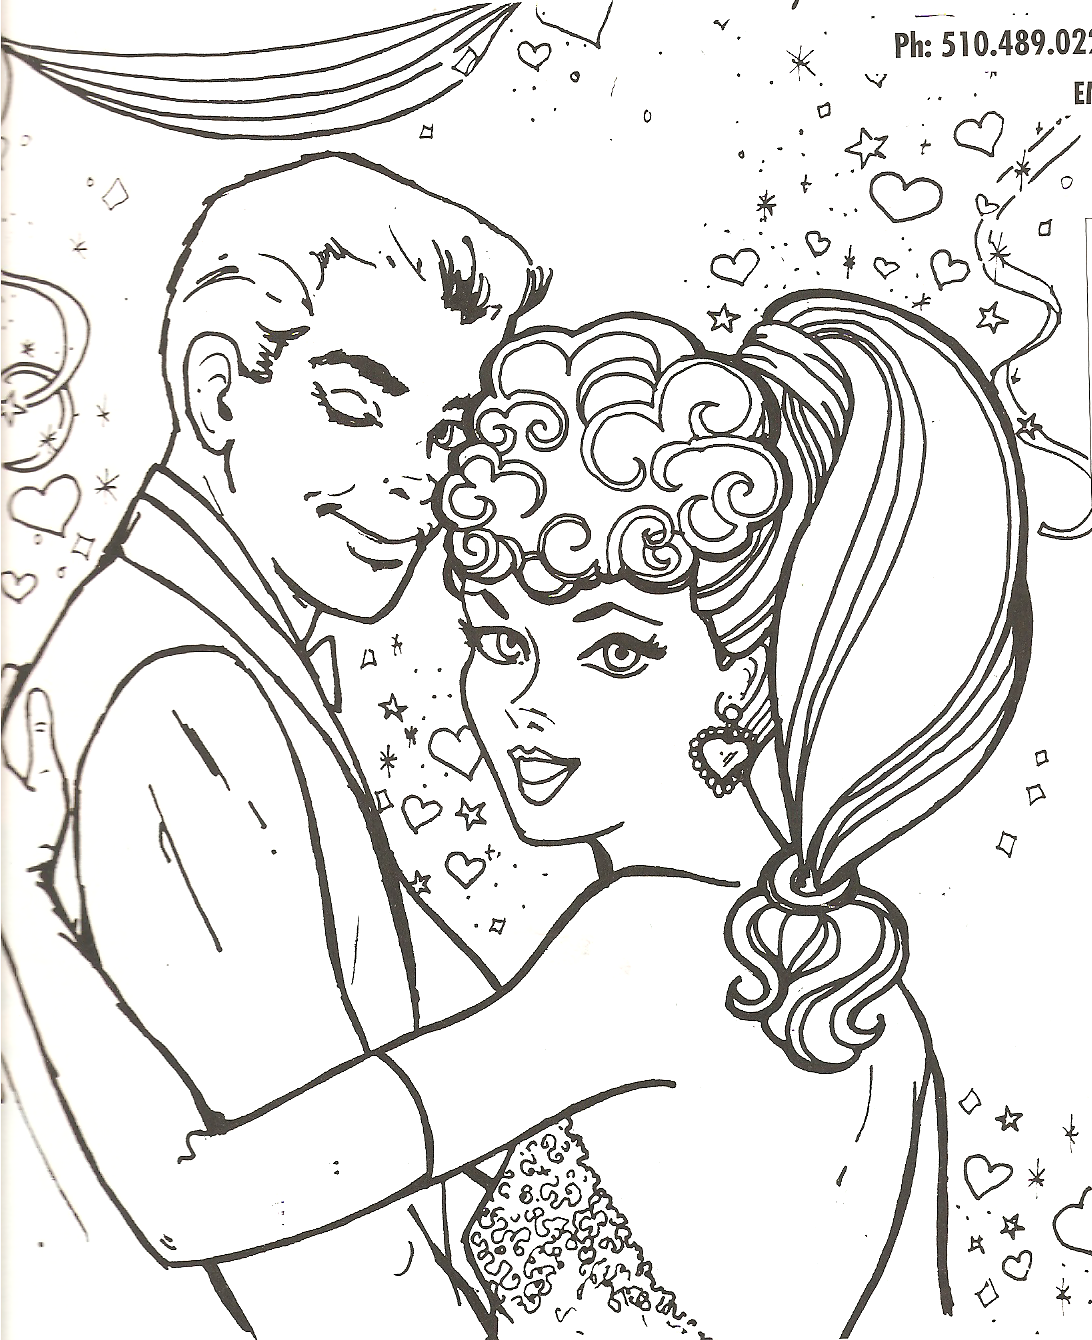 bing barbie ken coloring pages - photo#15